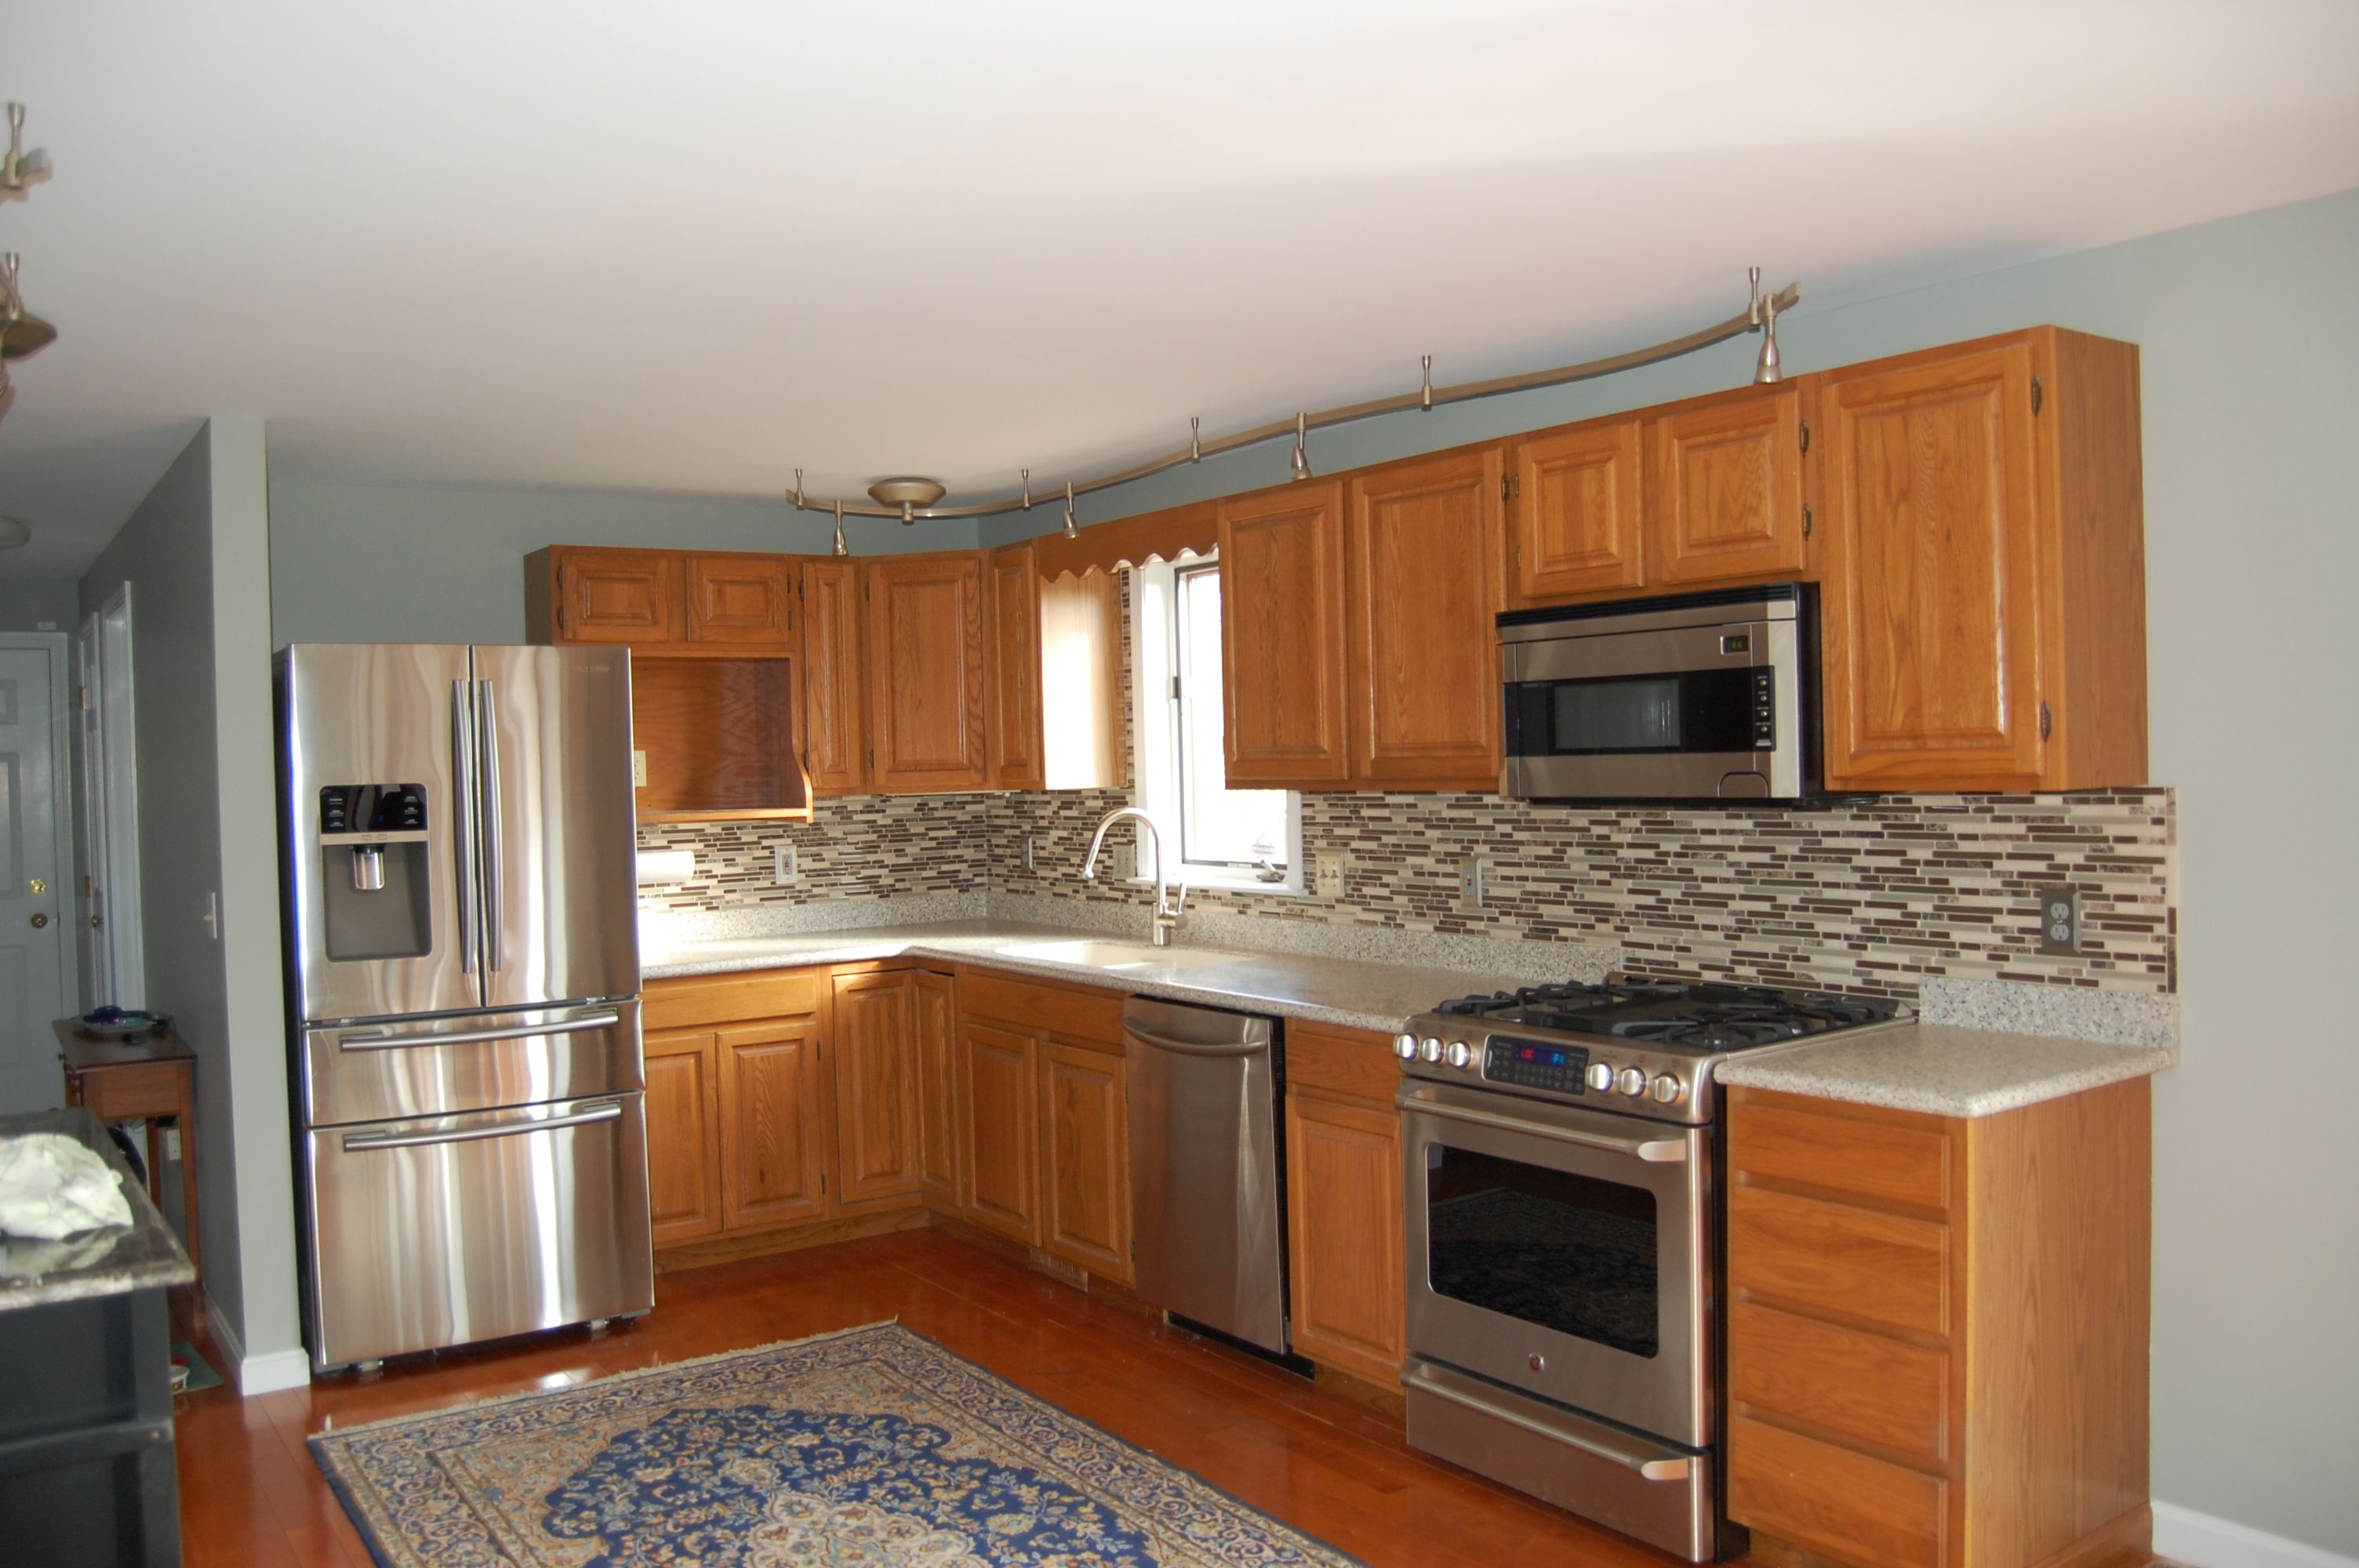 image cost awesome resurfacing ideas house sears refacing and kitchen of cabinets